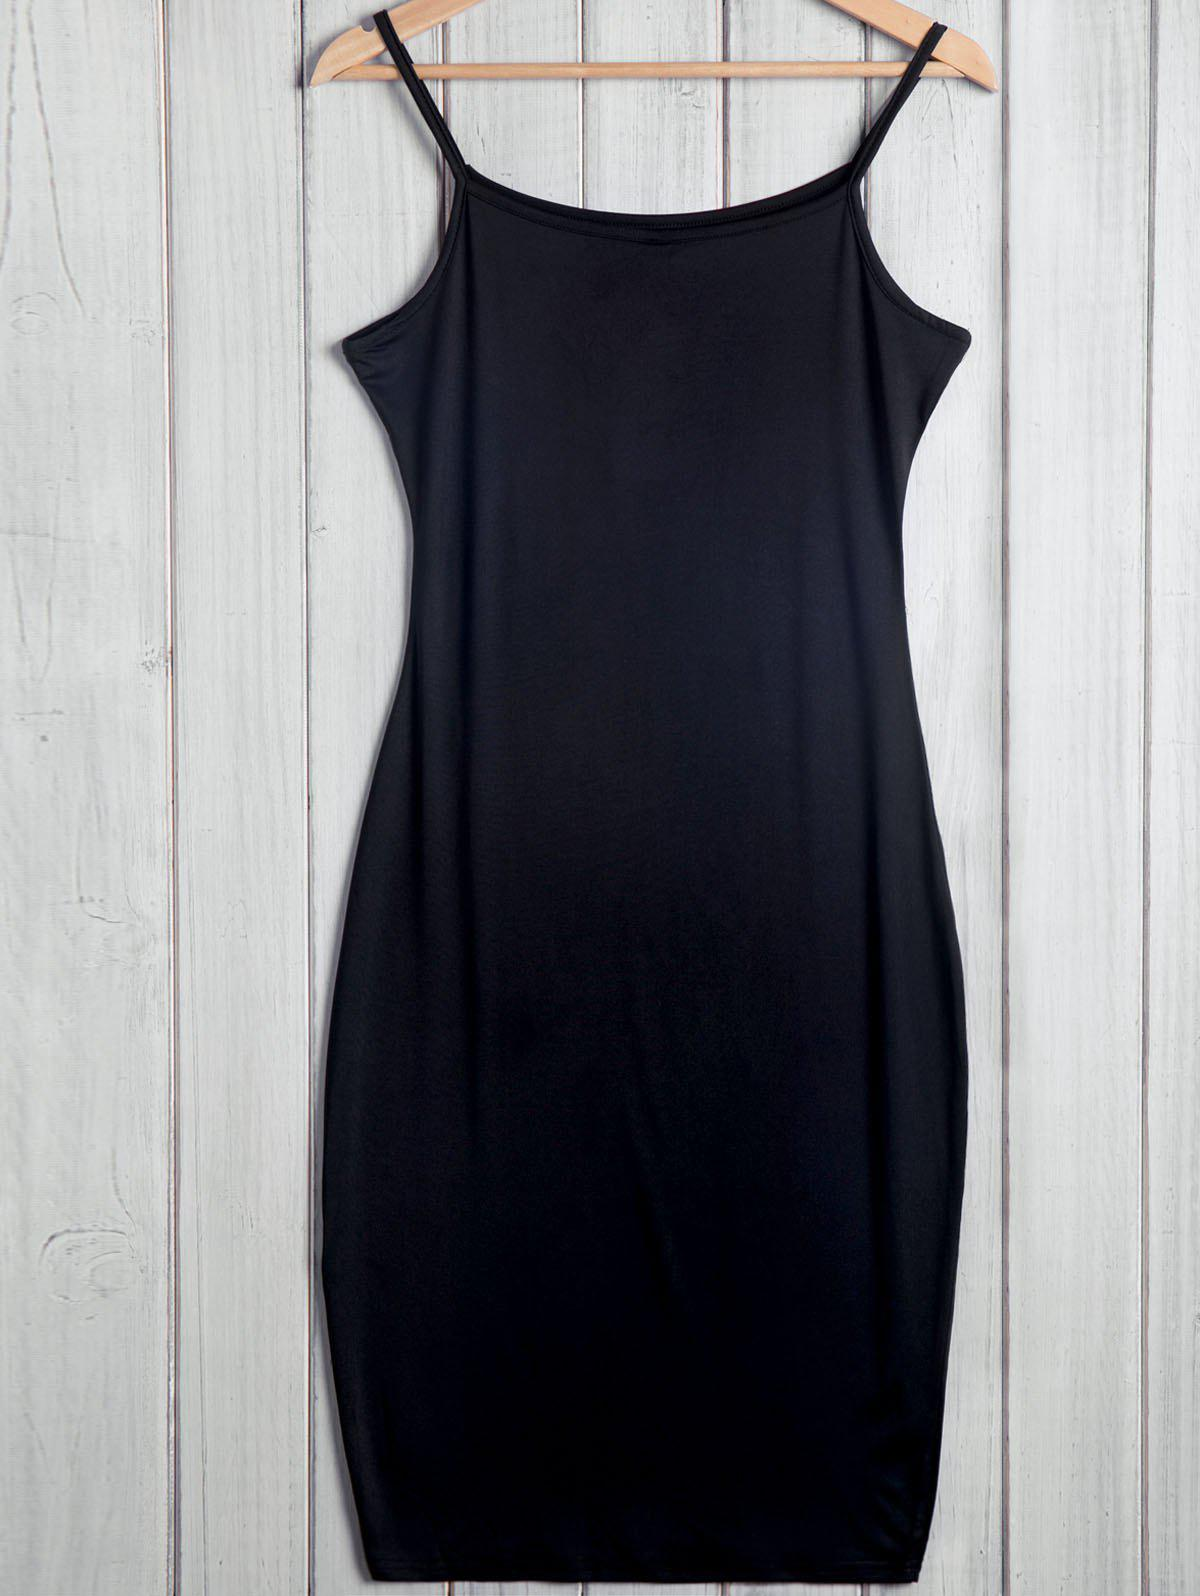 Simple Style Spaghetti Strap Sleeveless Solid Color Bodycon Women's Dress - BLACK XL